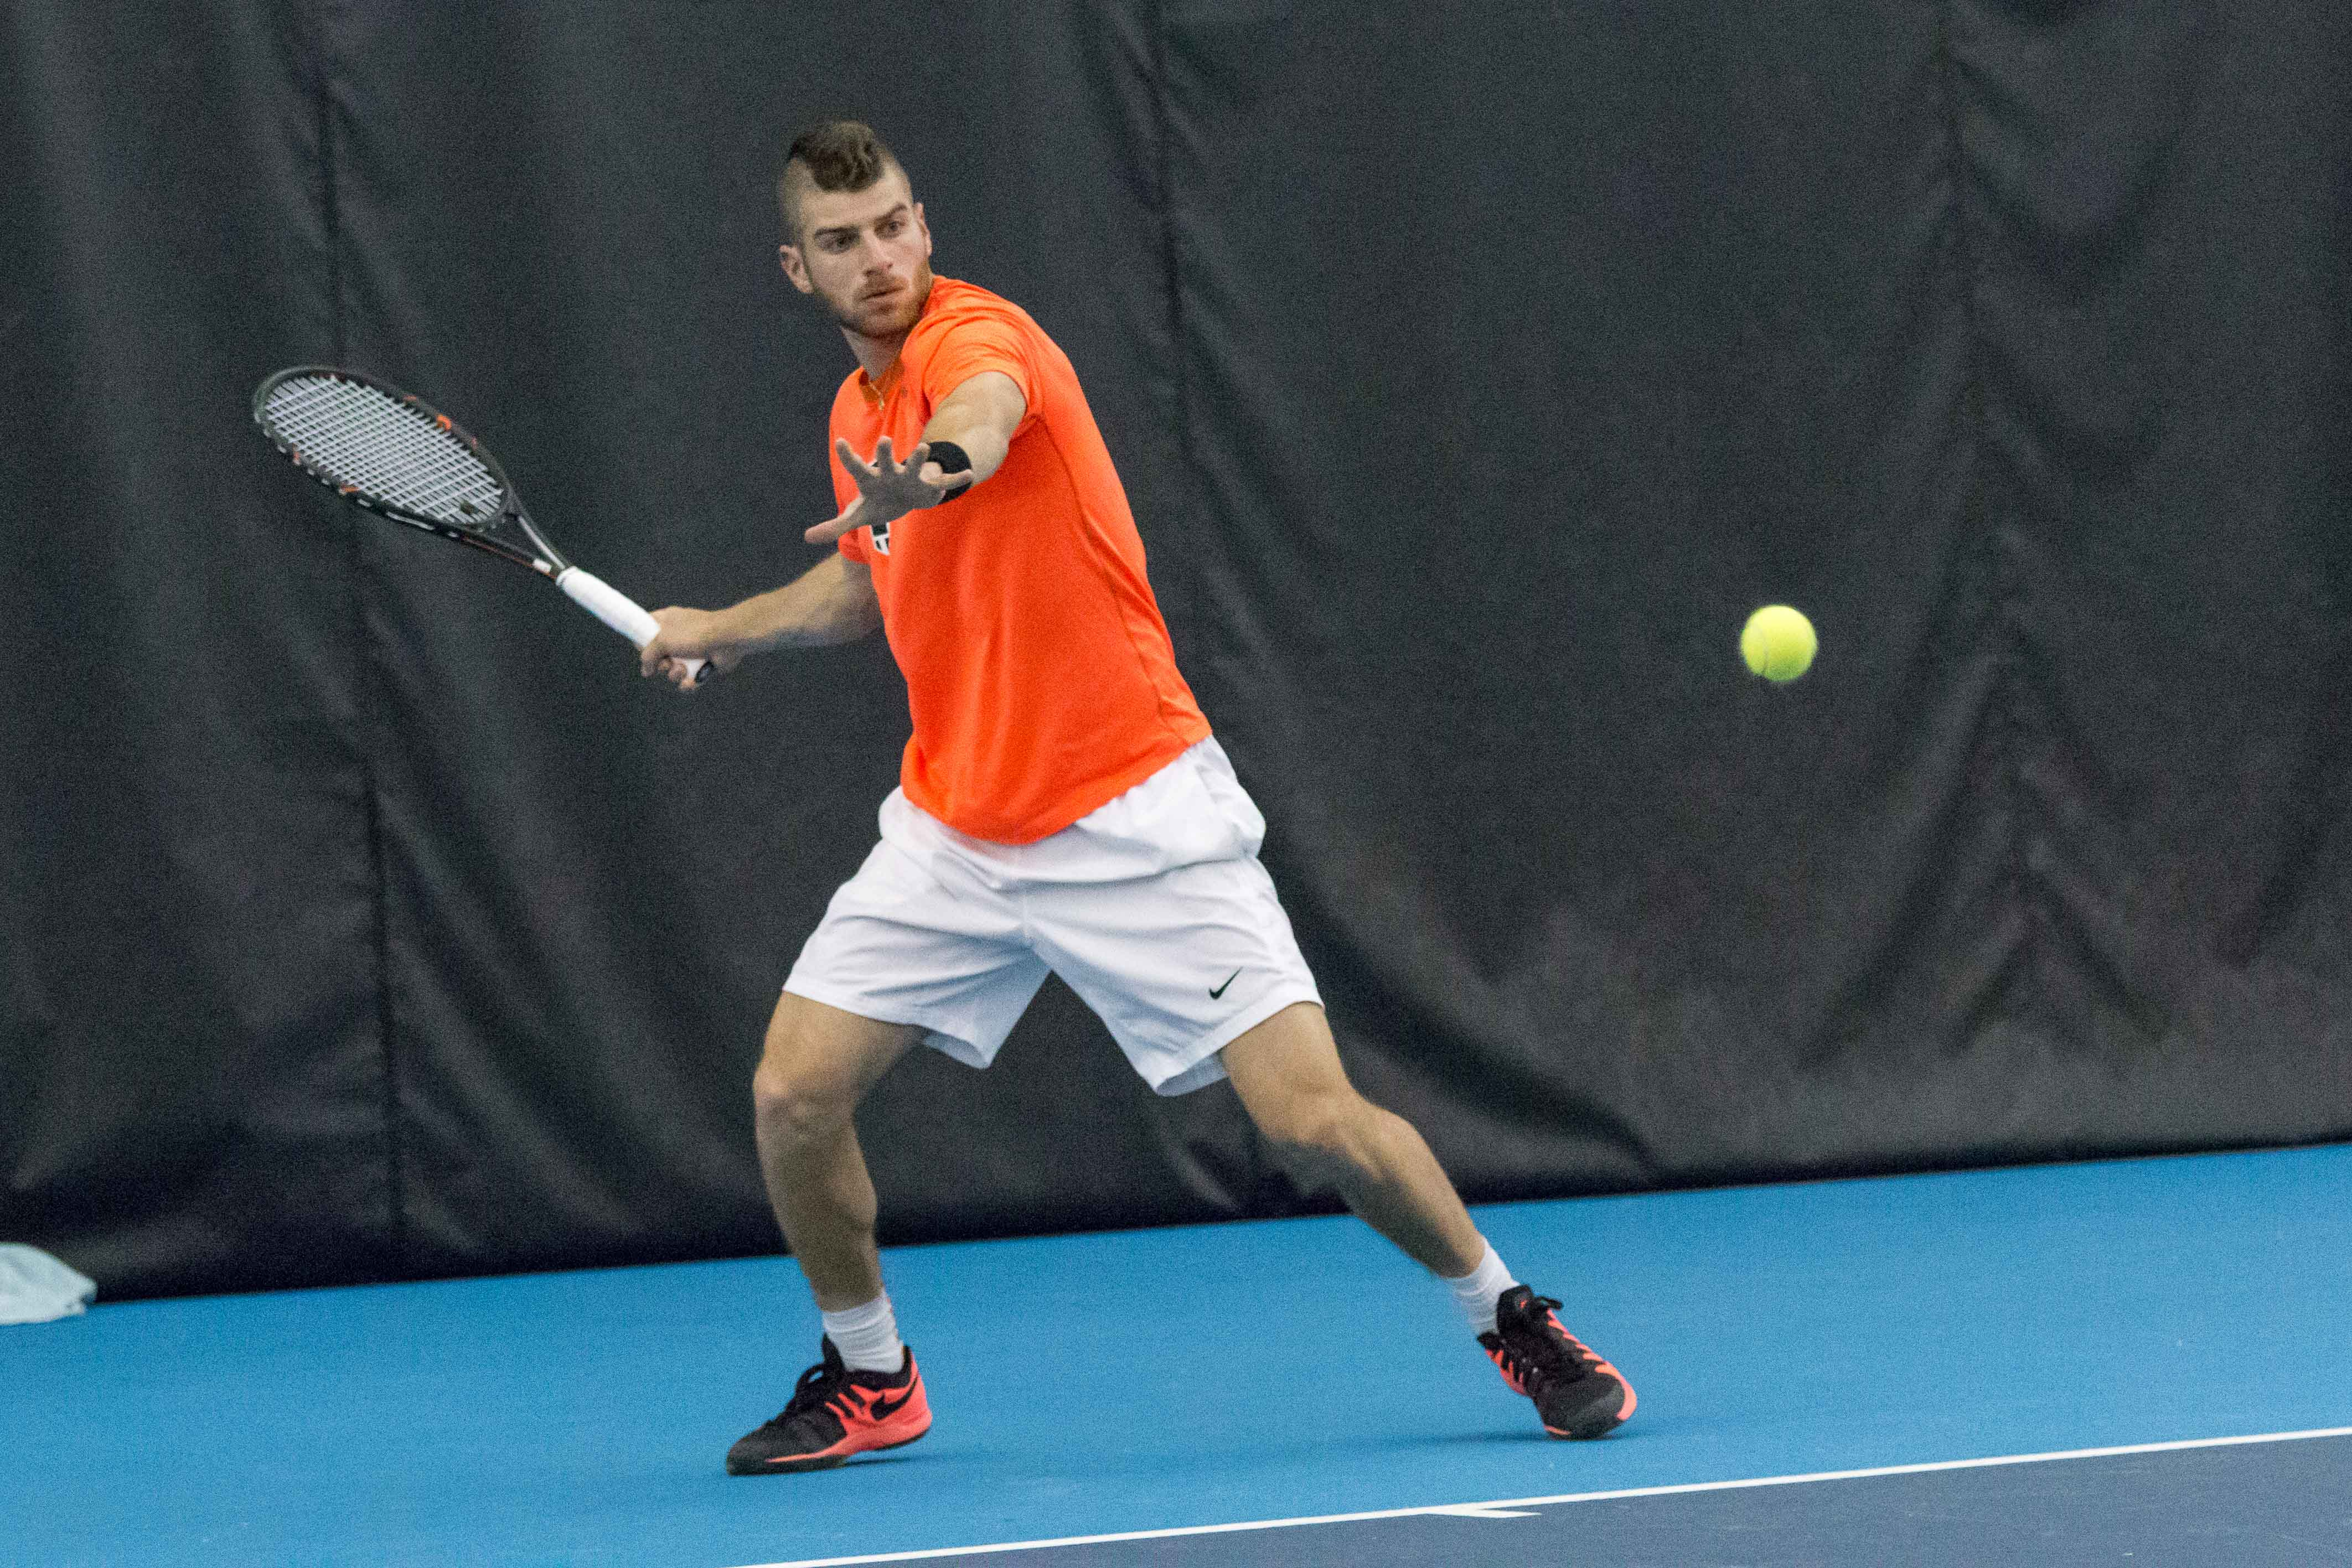 Illinois' Aron Hiltzik gets ready to return the ball during the match against Wisconsin at the Atkin's Tennis Center on Sunday, April 3. The Illini won 4-0.